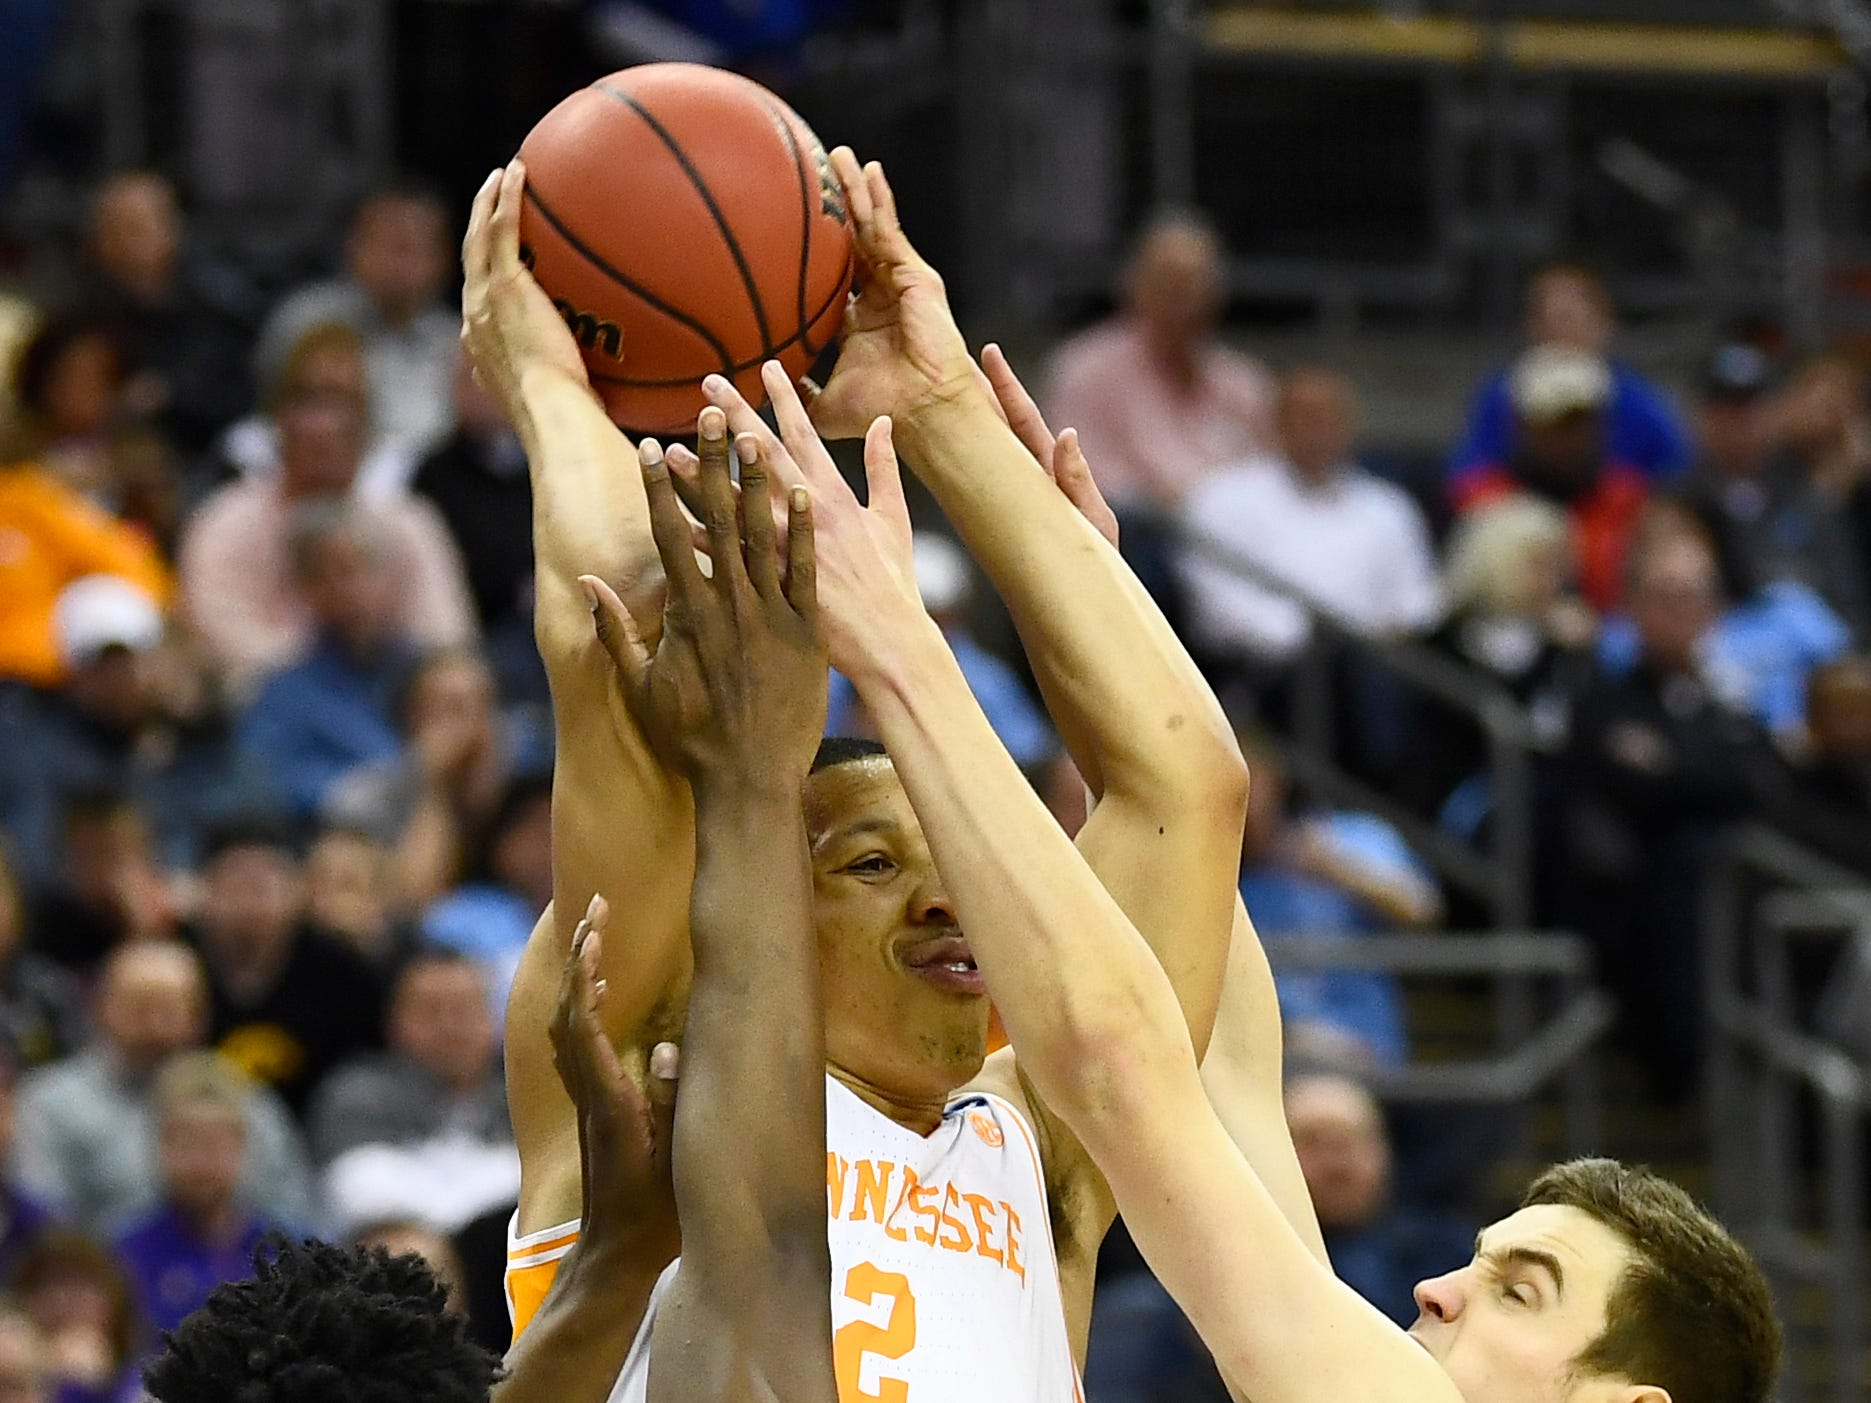 Tennessee forward Grant Williams (2) tries to pass the ball off surrounded by Iowa defenders during the second half in the second round of the NCAA Tournament at Nationwide Arena in Columbus, Ohio, Sunday, March 24, 2019.